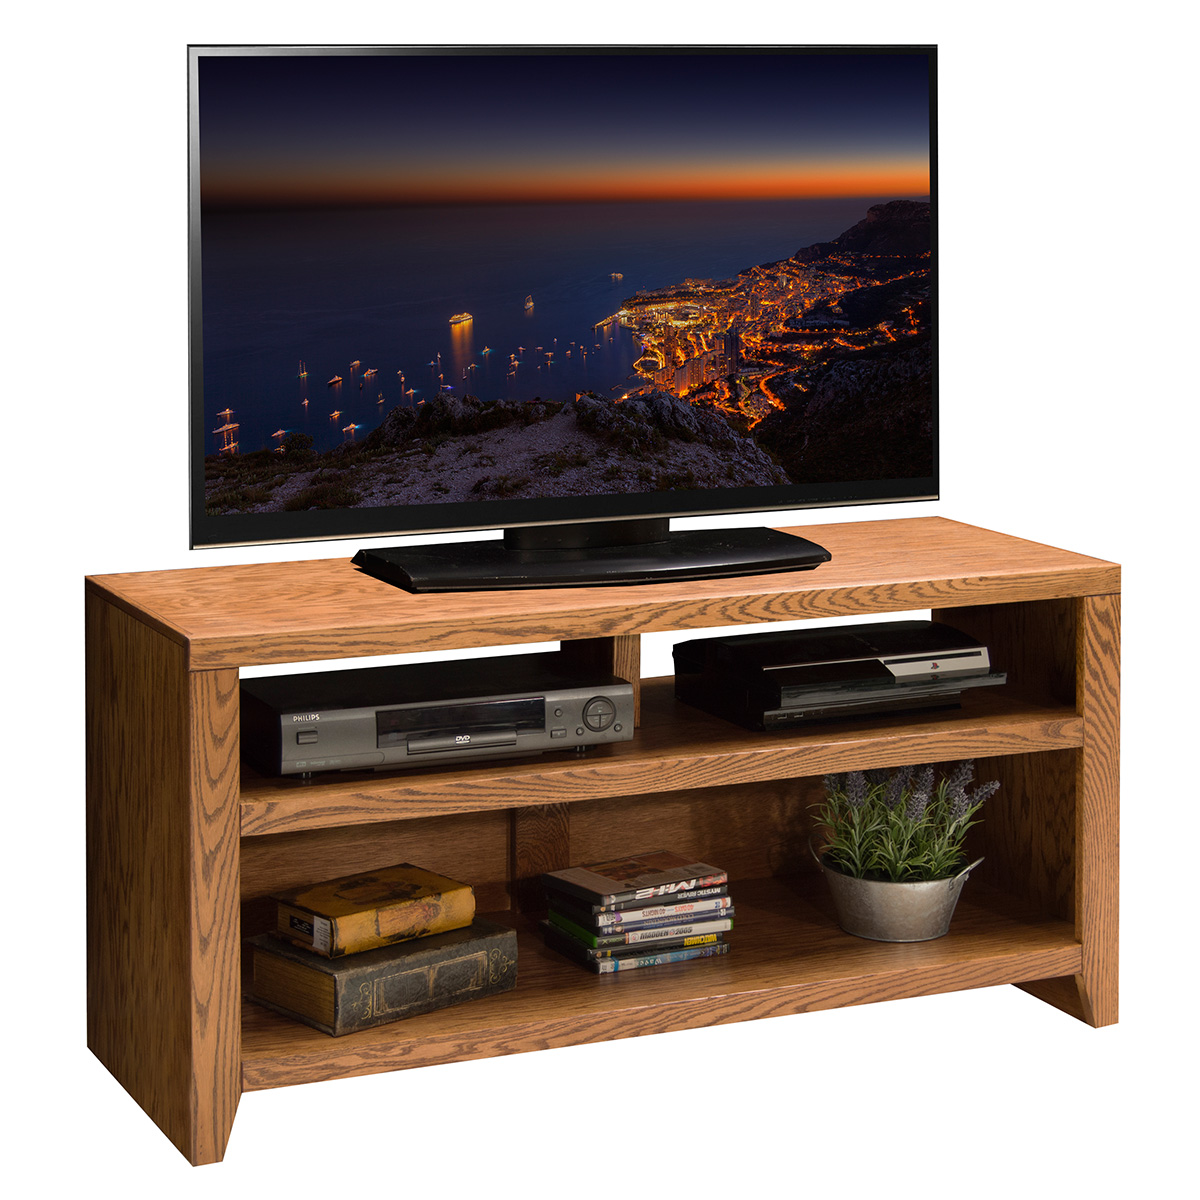 Legends furniture cl1208 city loft 48 tv stand cart in golden oak Home design golden city furniture